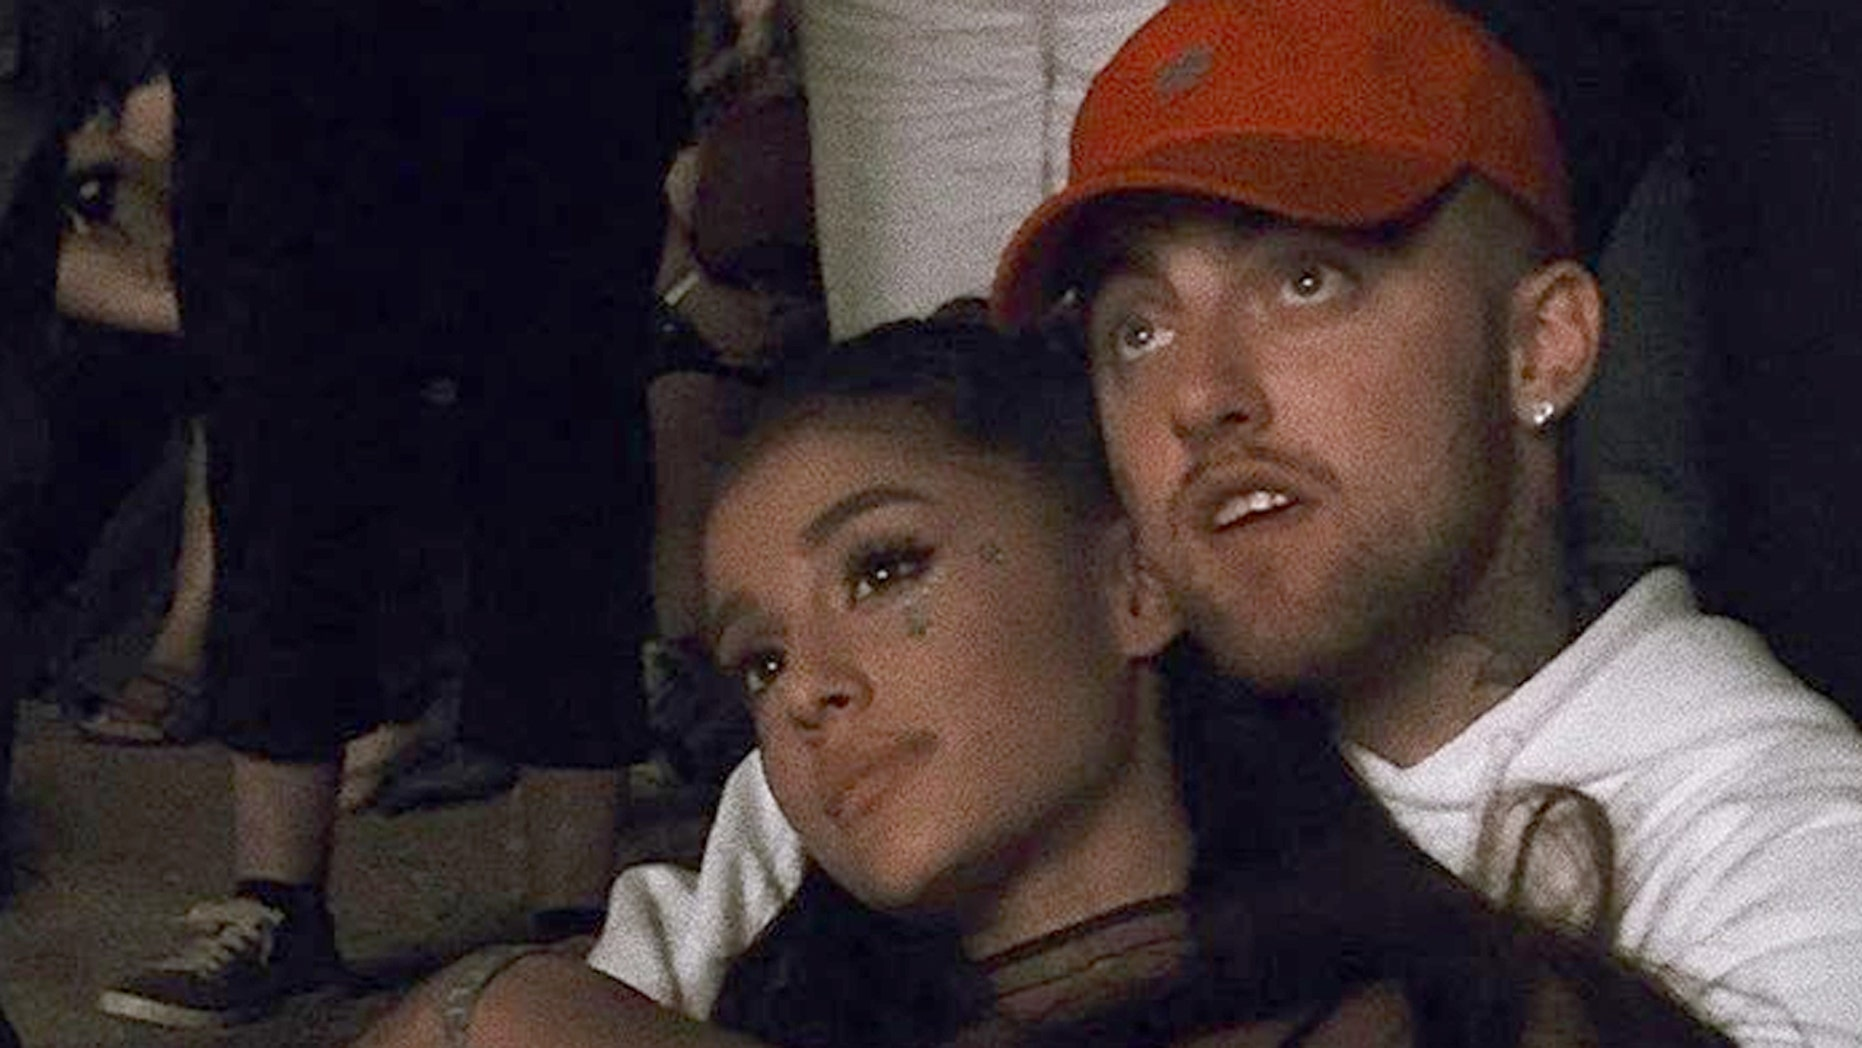 Ariana Grande and rapper Mac Miller break up after two years of dating.